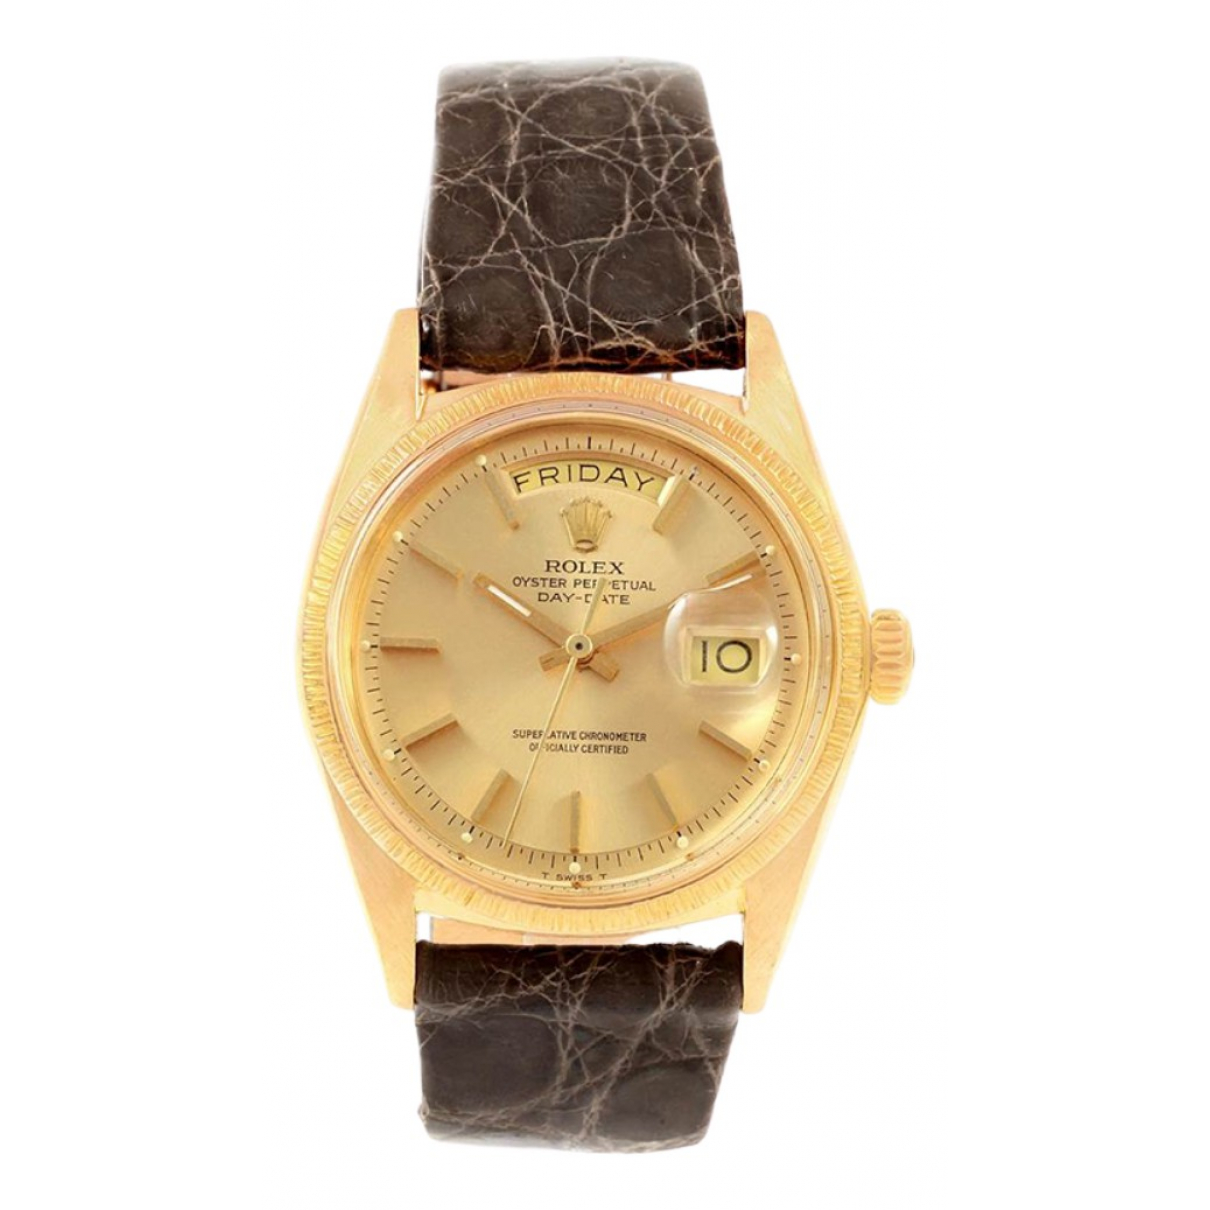 Rolex Day-Date 36mm Gold Yellow gold watch for Men \N